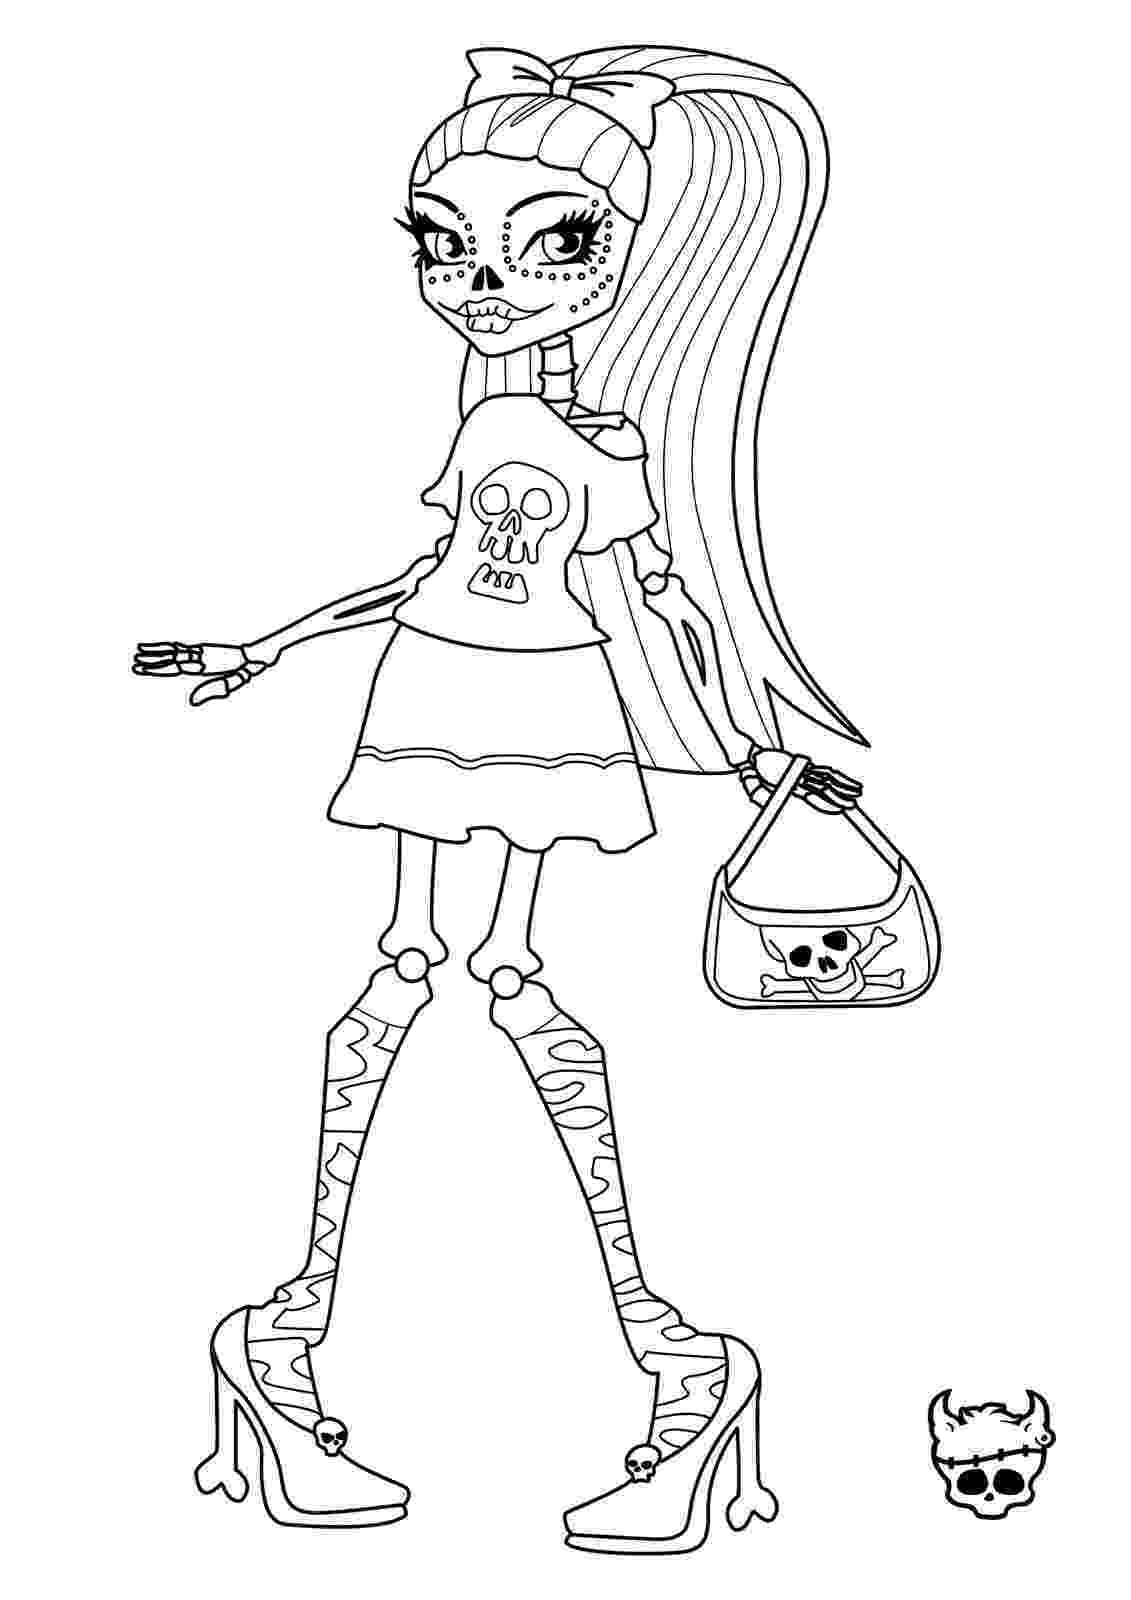 monster high coloring pages printables free printable monster high coloring pages february 2013 pages high monster printables coloring